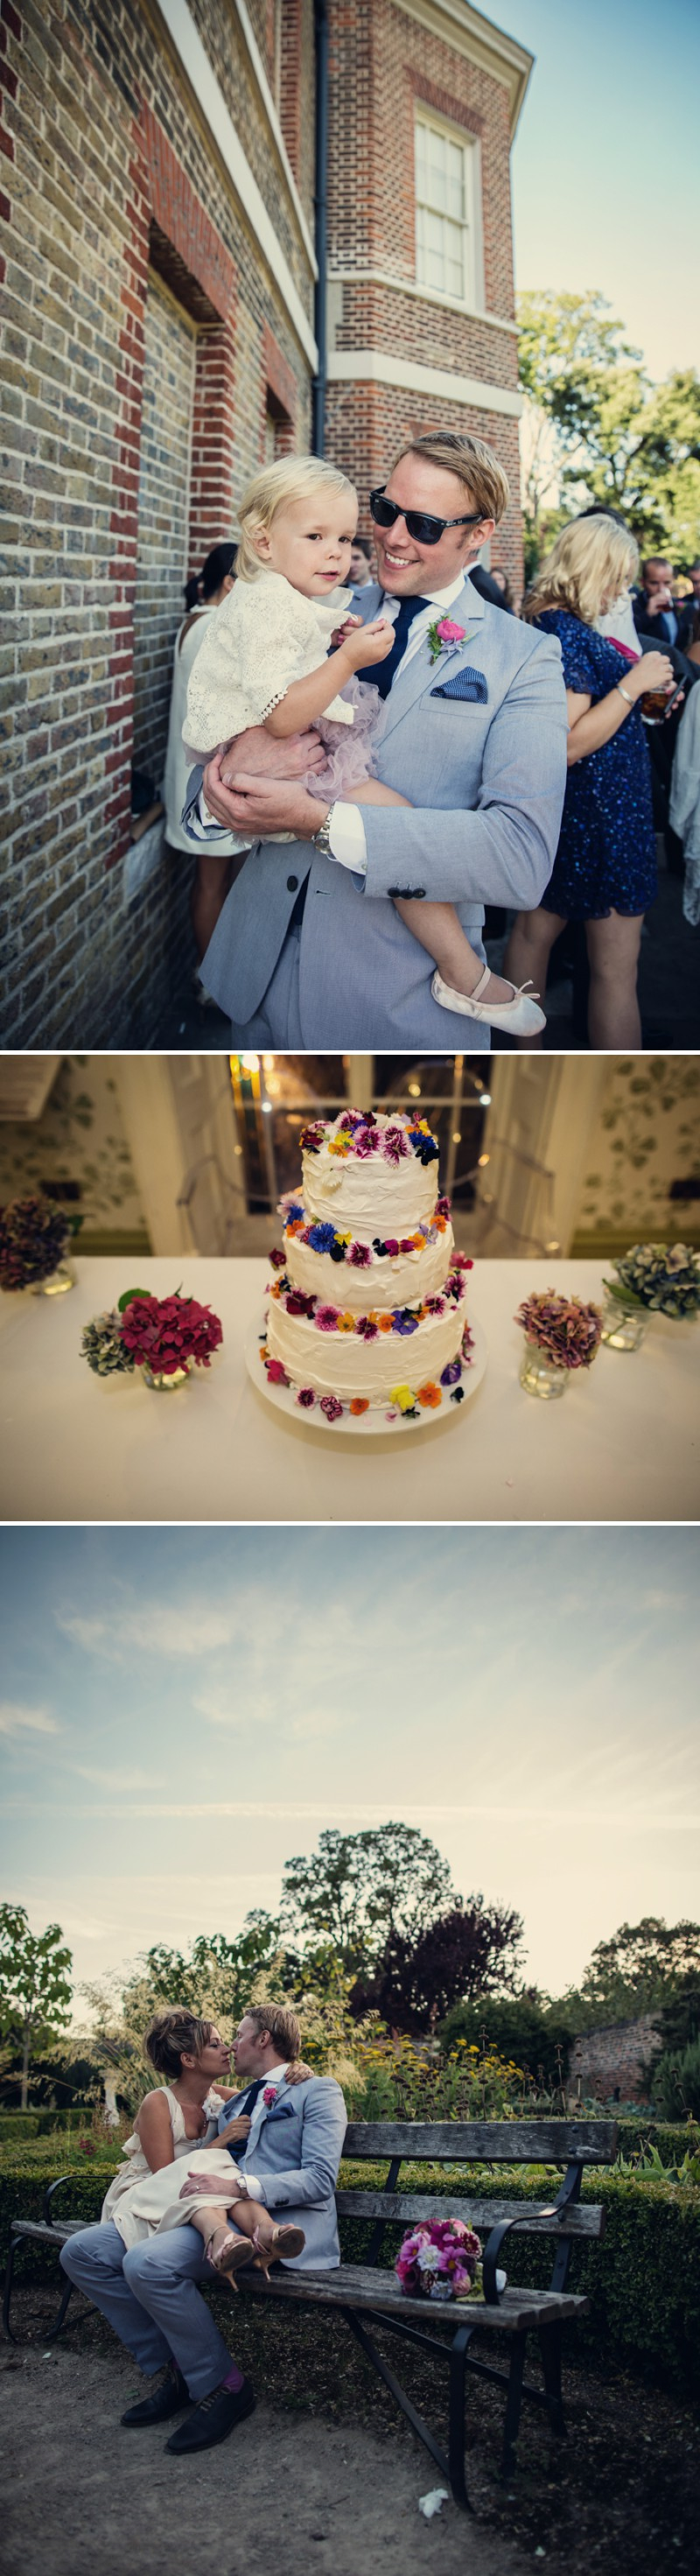 An Intimate And Contemporary Wedding At Valentines Mansion With A Vintage Chanel Wedding Dress And A Cool Water And Dahlia Bouquet By Assassynation Photography 7